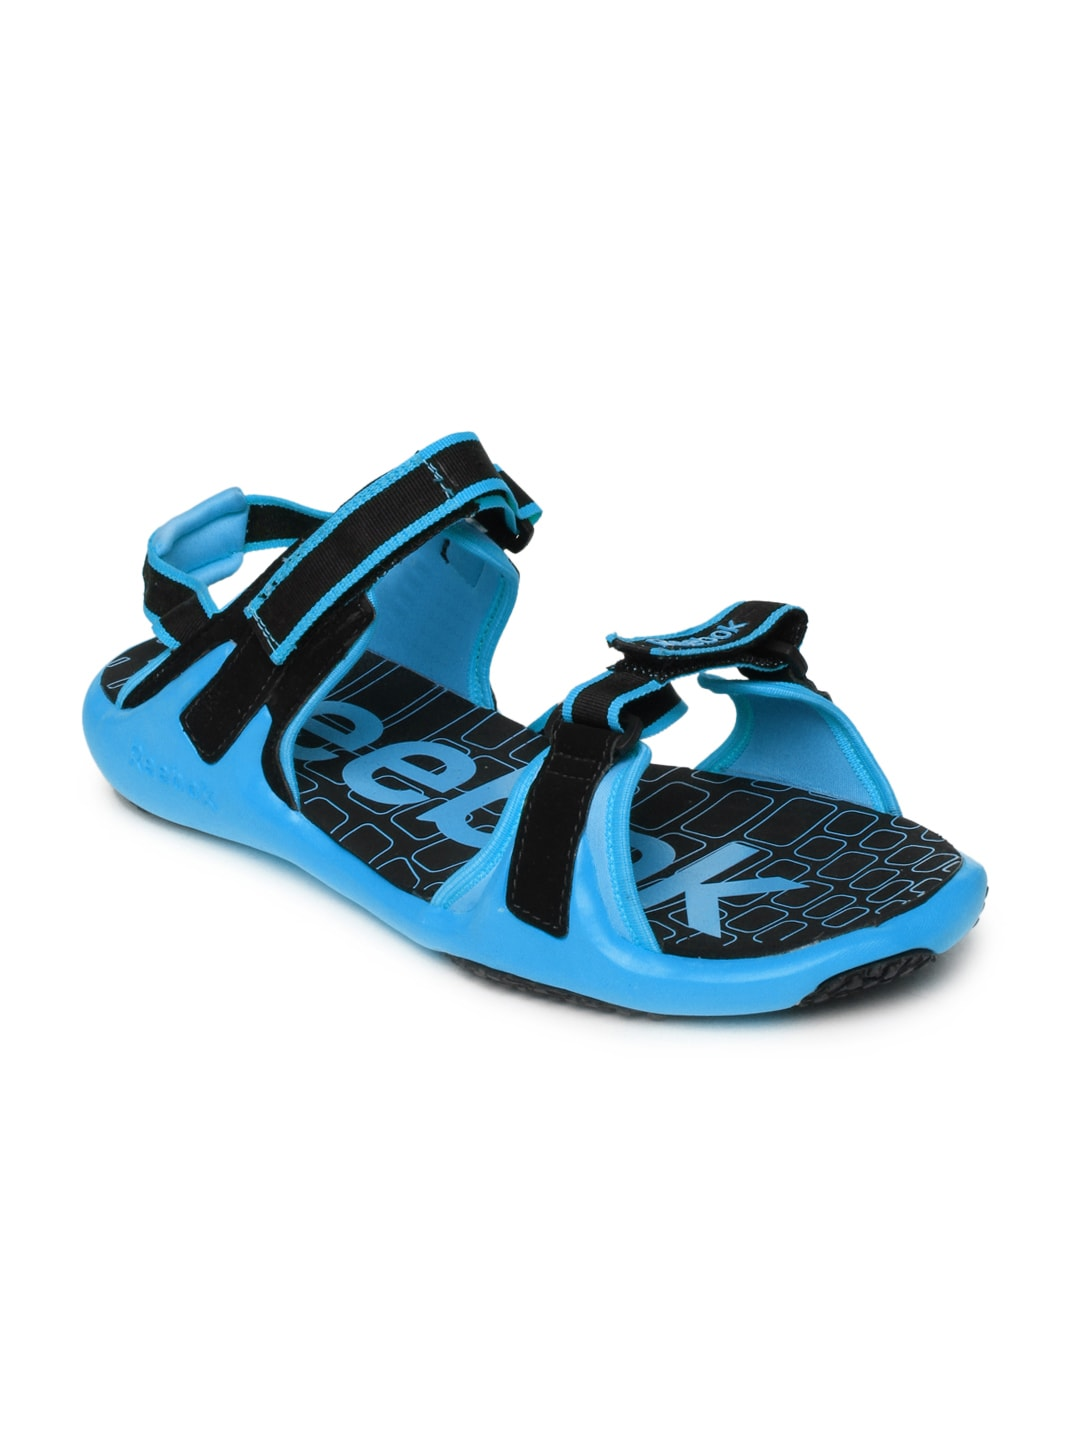 f5cb846c109b5c Reebok m40323 Men Black And Blue Adventure Grail Lp Sports Sandals- Price  in India